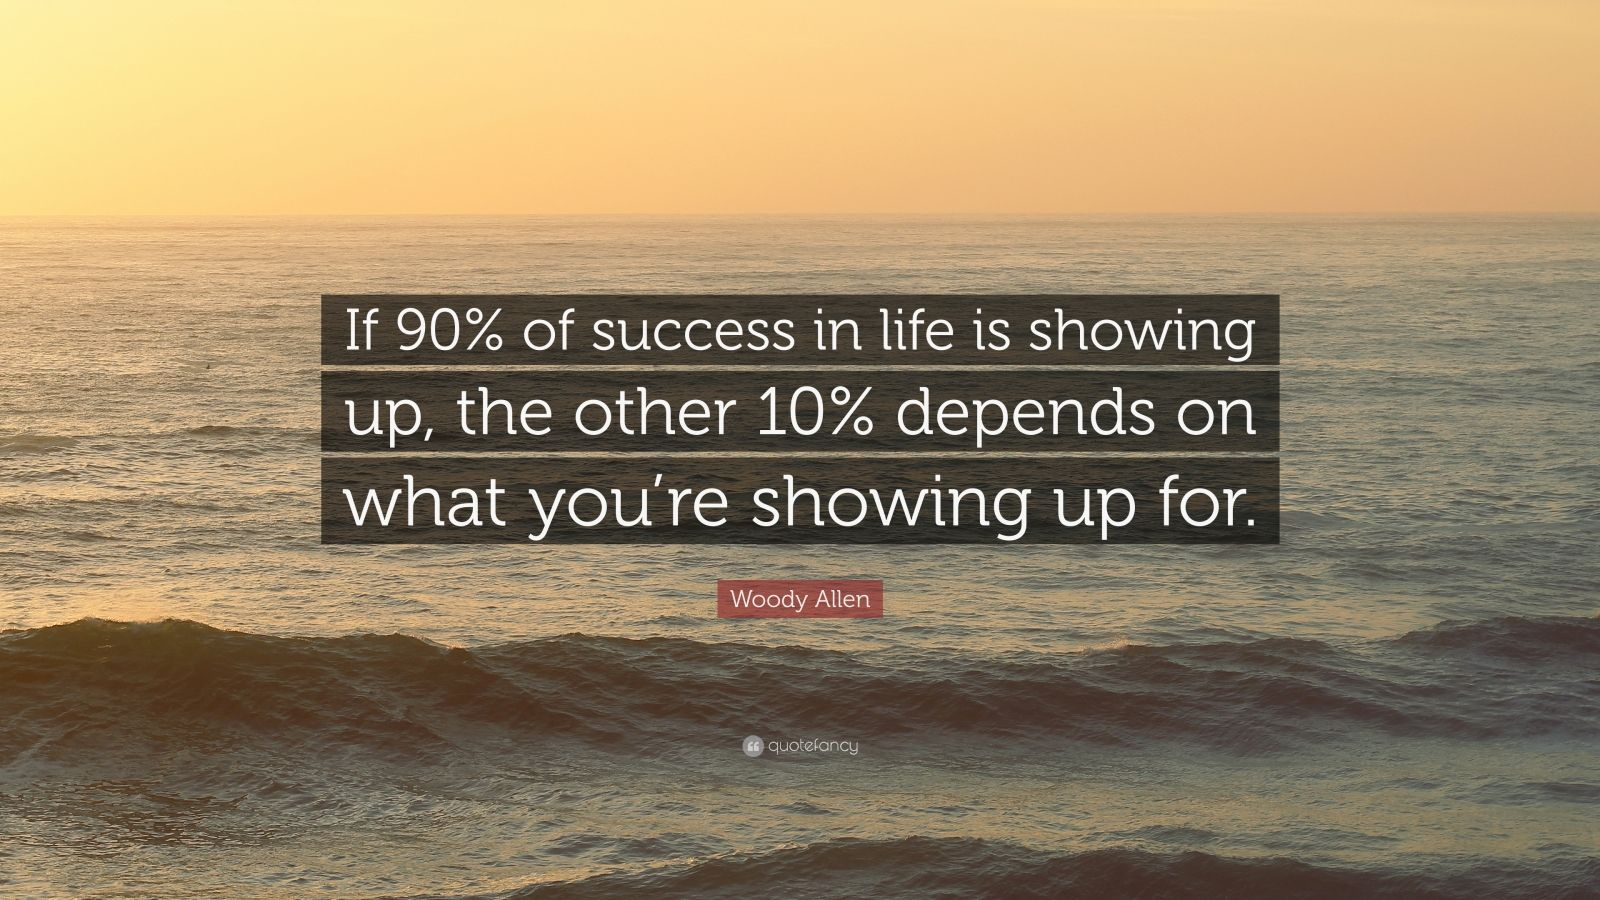 """Woody Allen Quote: """"If 90% of success in life is showing up, the other 10% depends on what you're showing up for."""""""